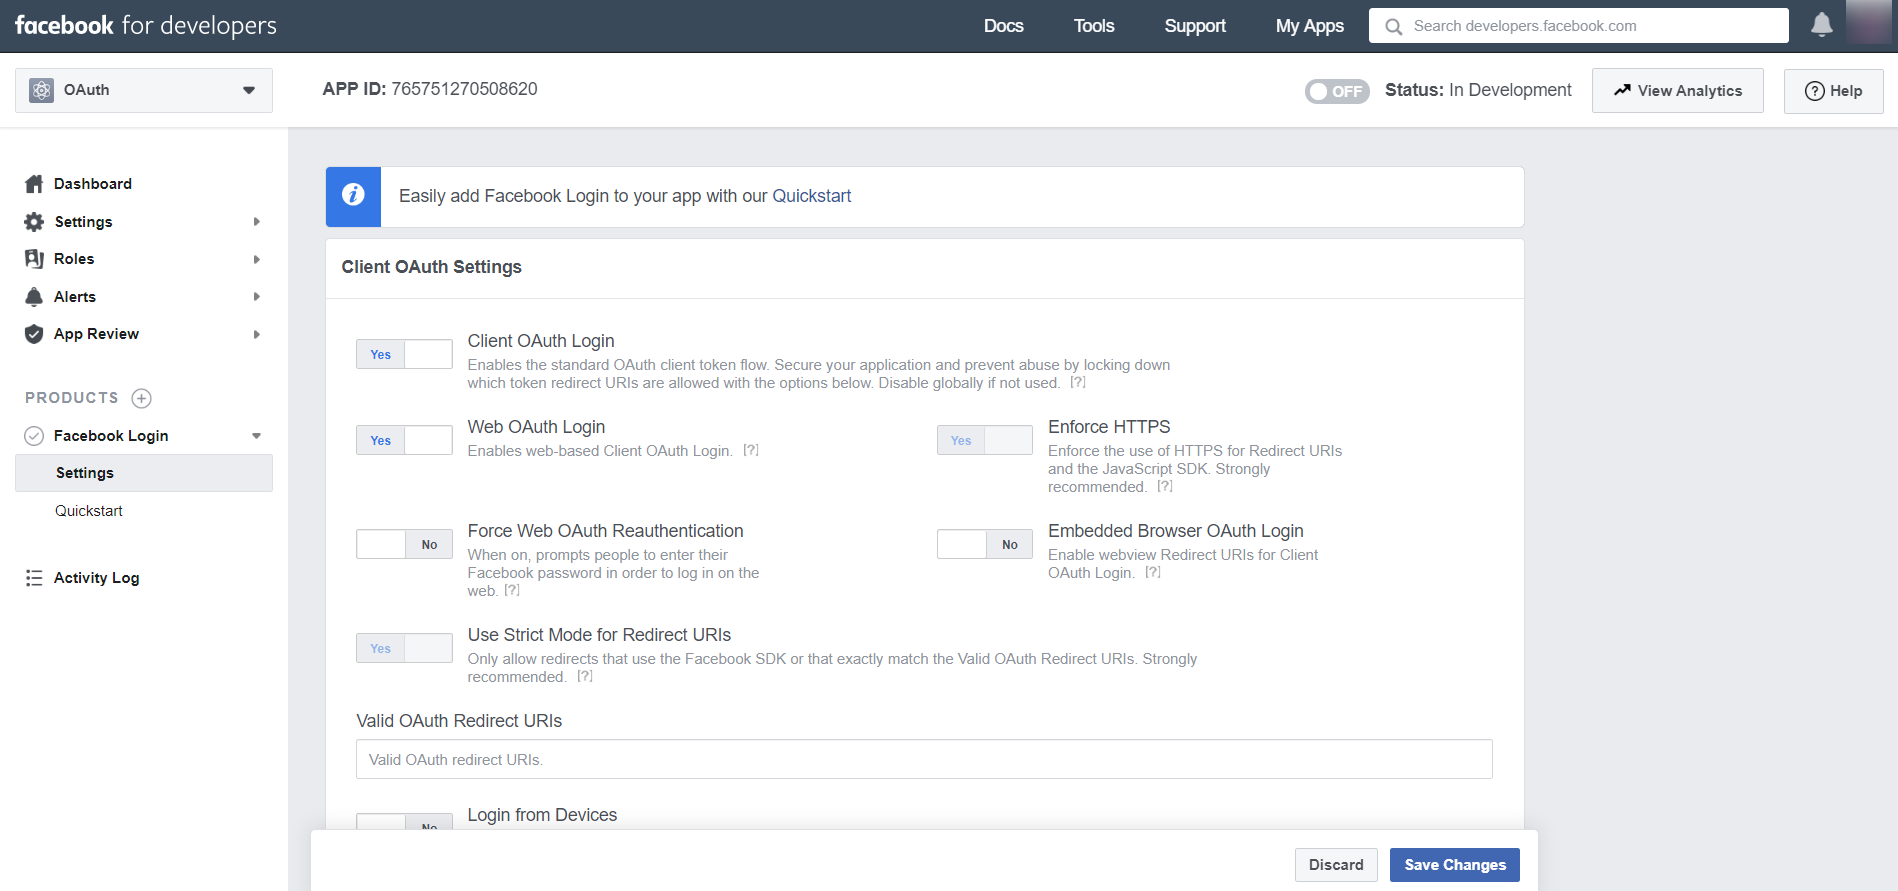 OAuth/OpenID/OIDC Single Sign On (SSO), Facebook SSO Login Client OAuth Settings